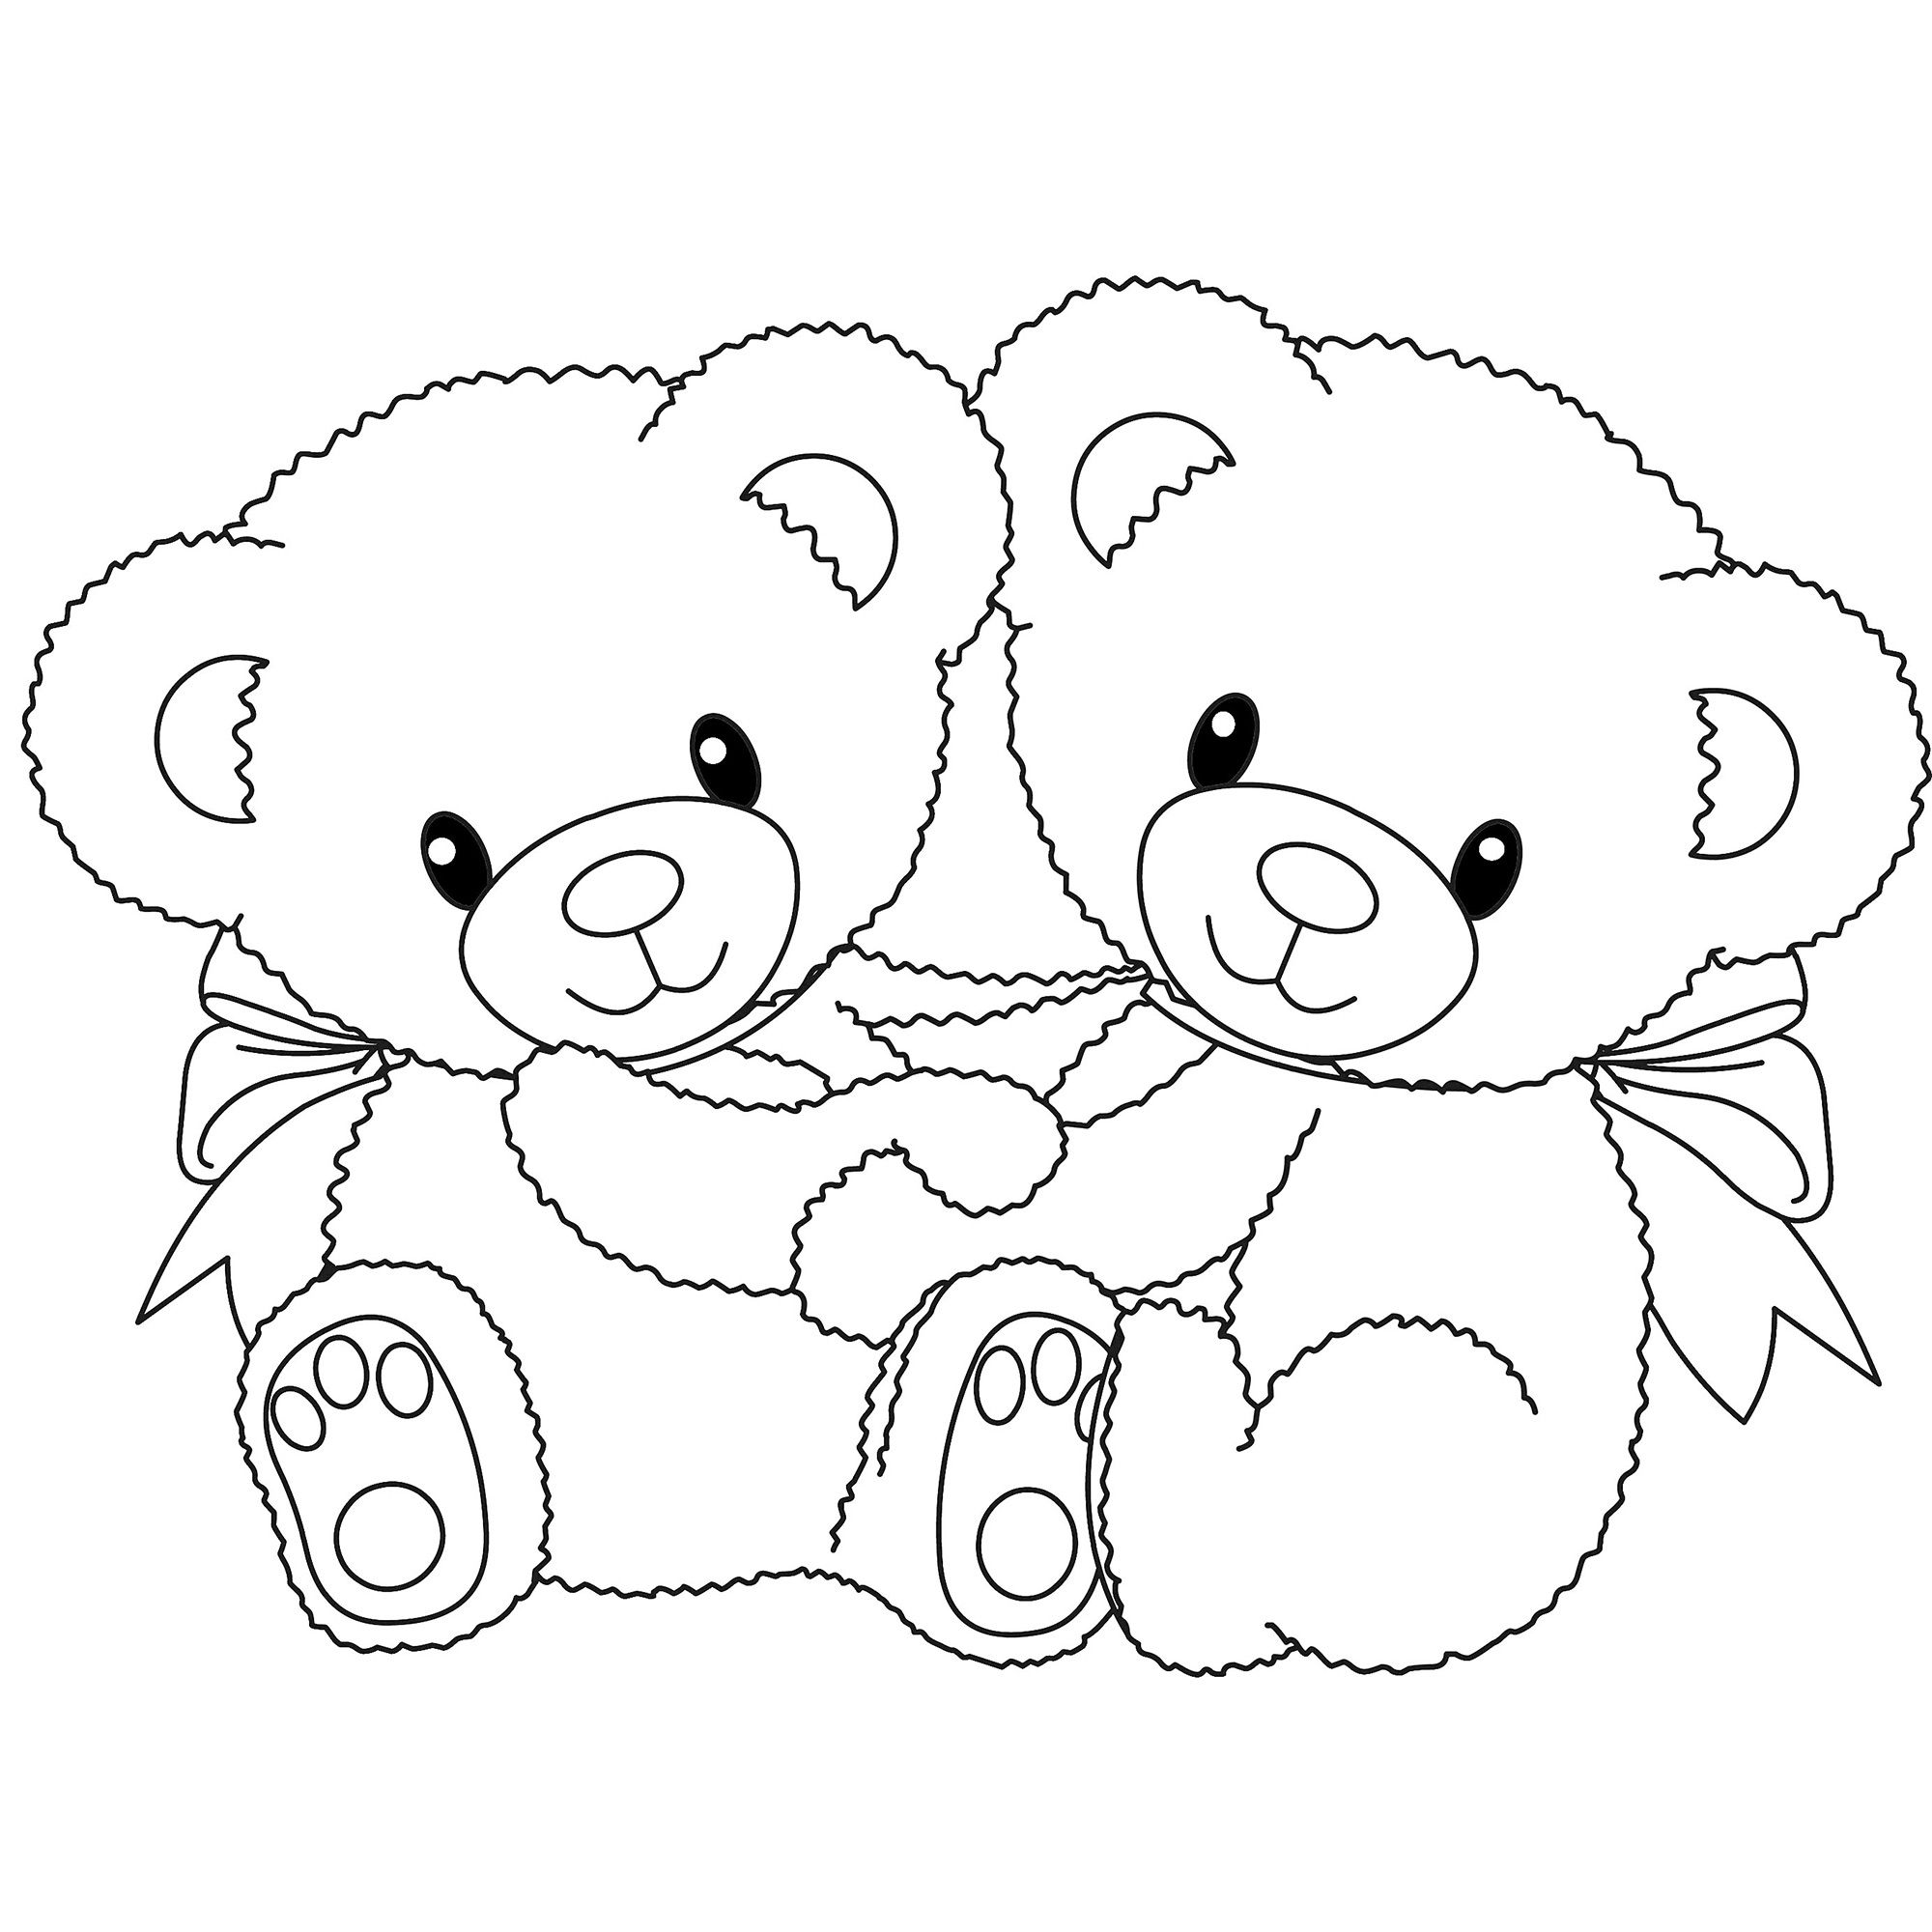 Bear Coloring Pages (5) Teddy bear coloring pages, Bear